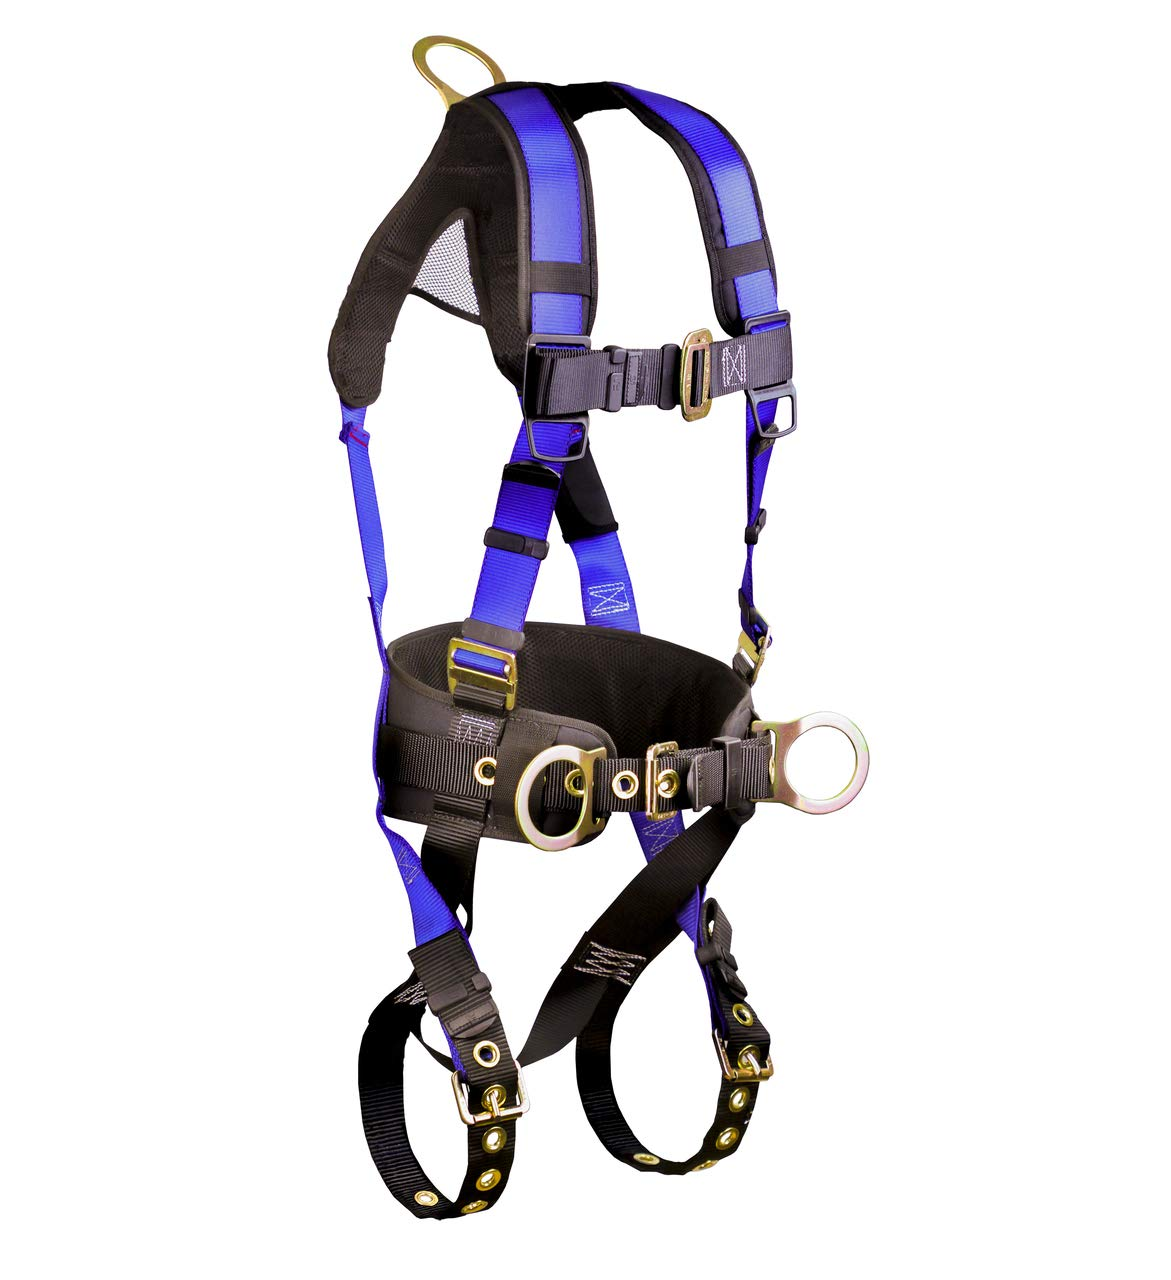 FallTech 7073B Harness with 3 D-Rings and Tongue Buckle Leg Straps (Each/L-XL)